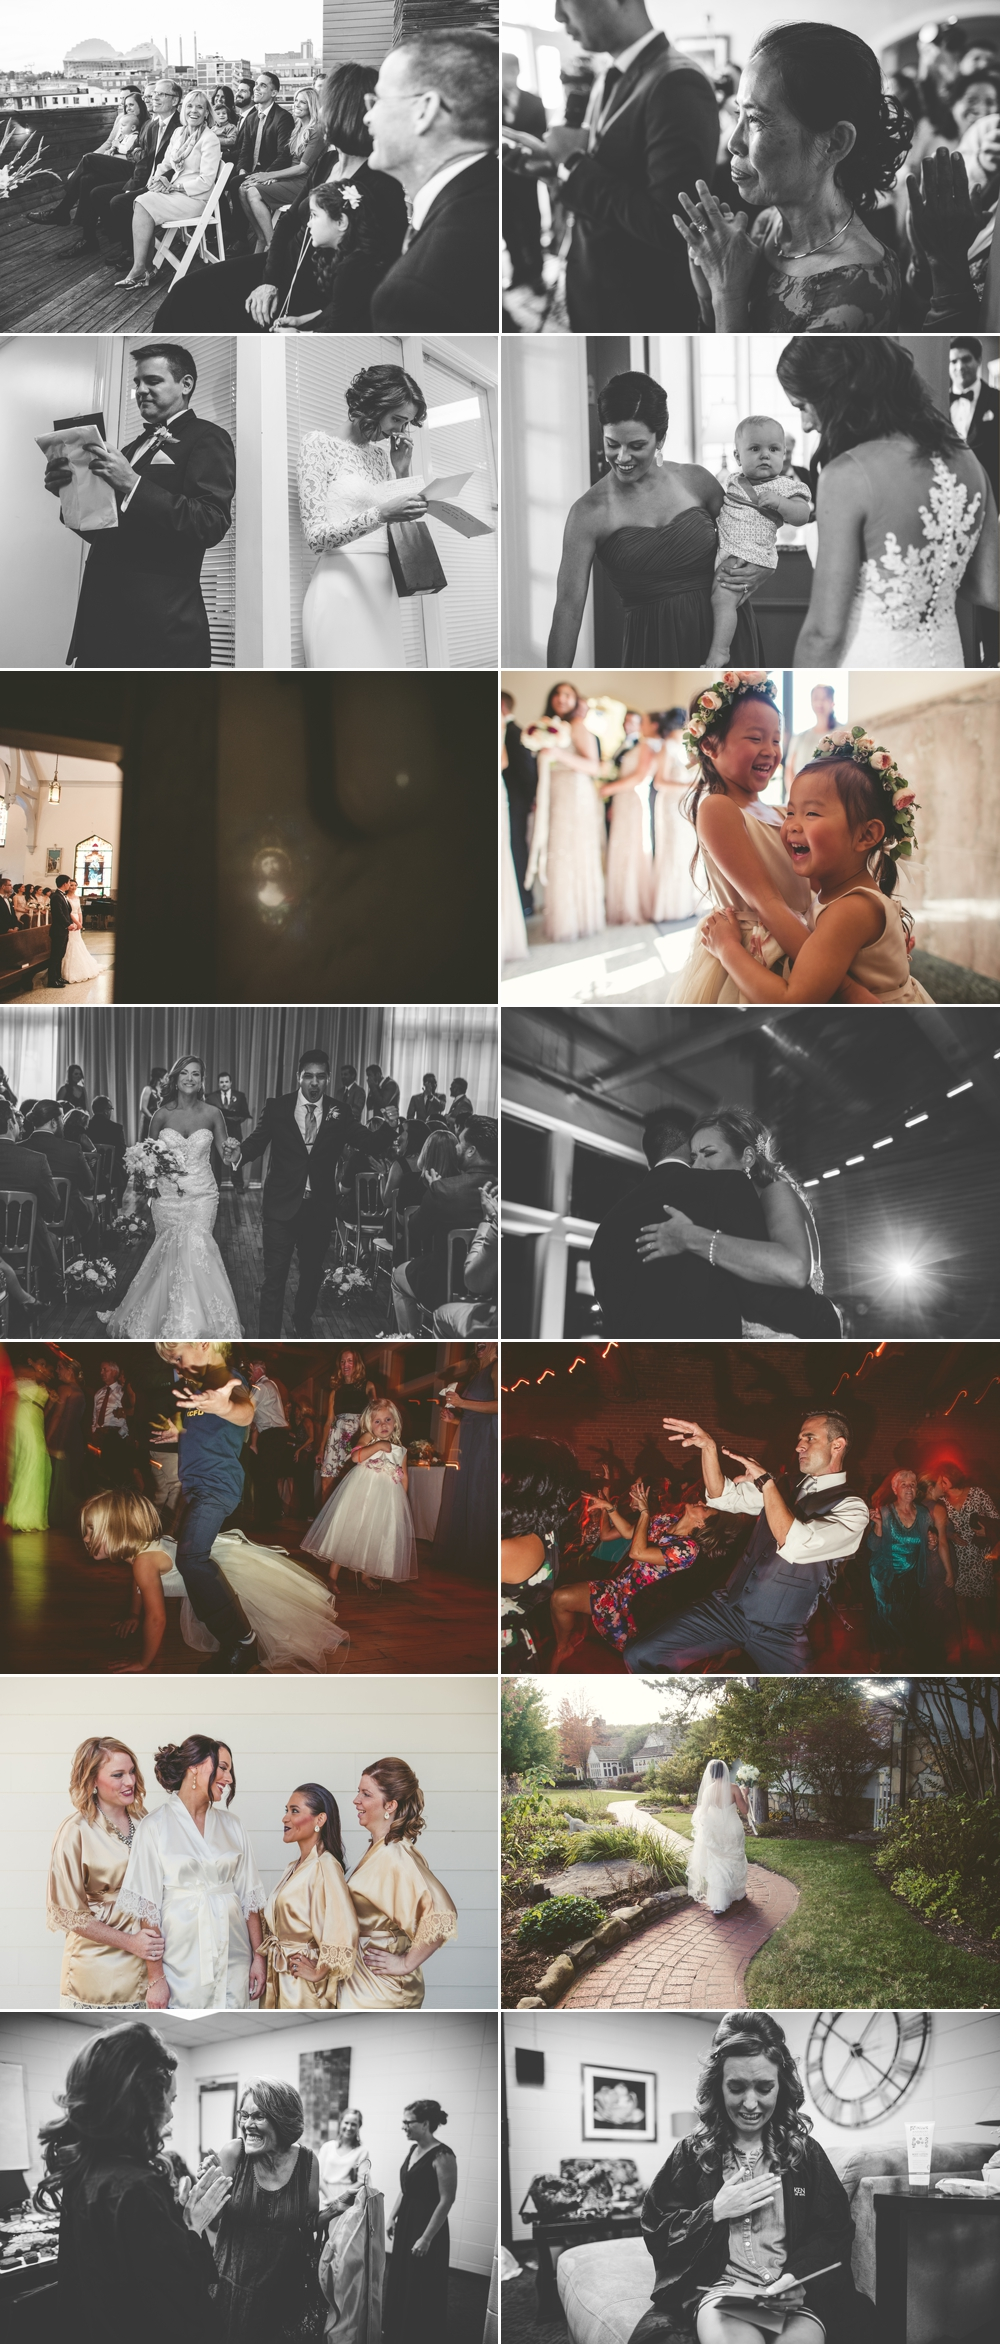 jason_domingues_photography_best_kansas_city_photography_kc_wedding_weddings0008.jpg